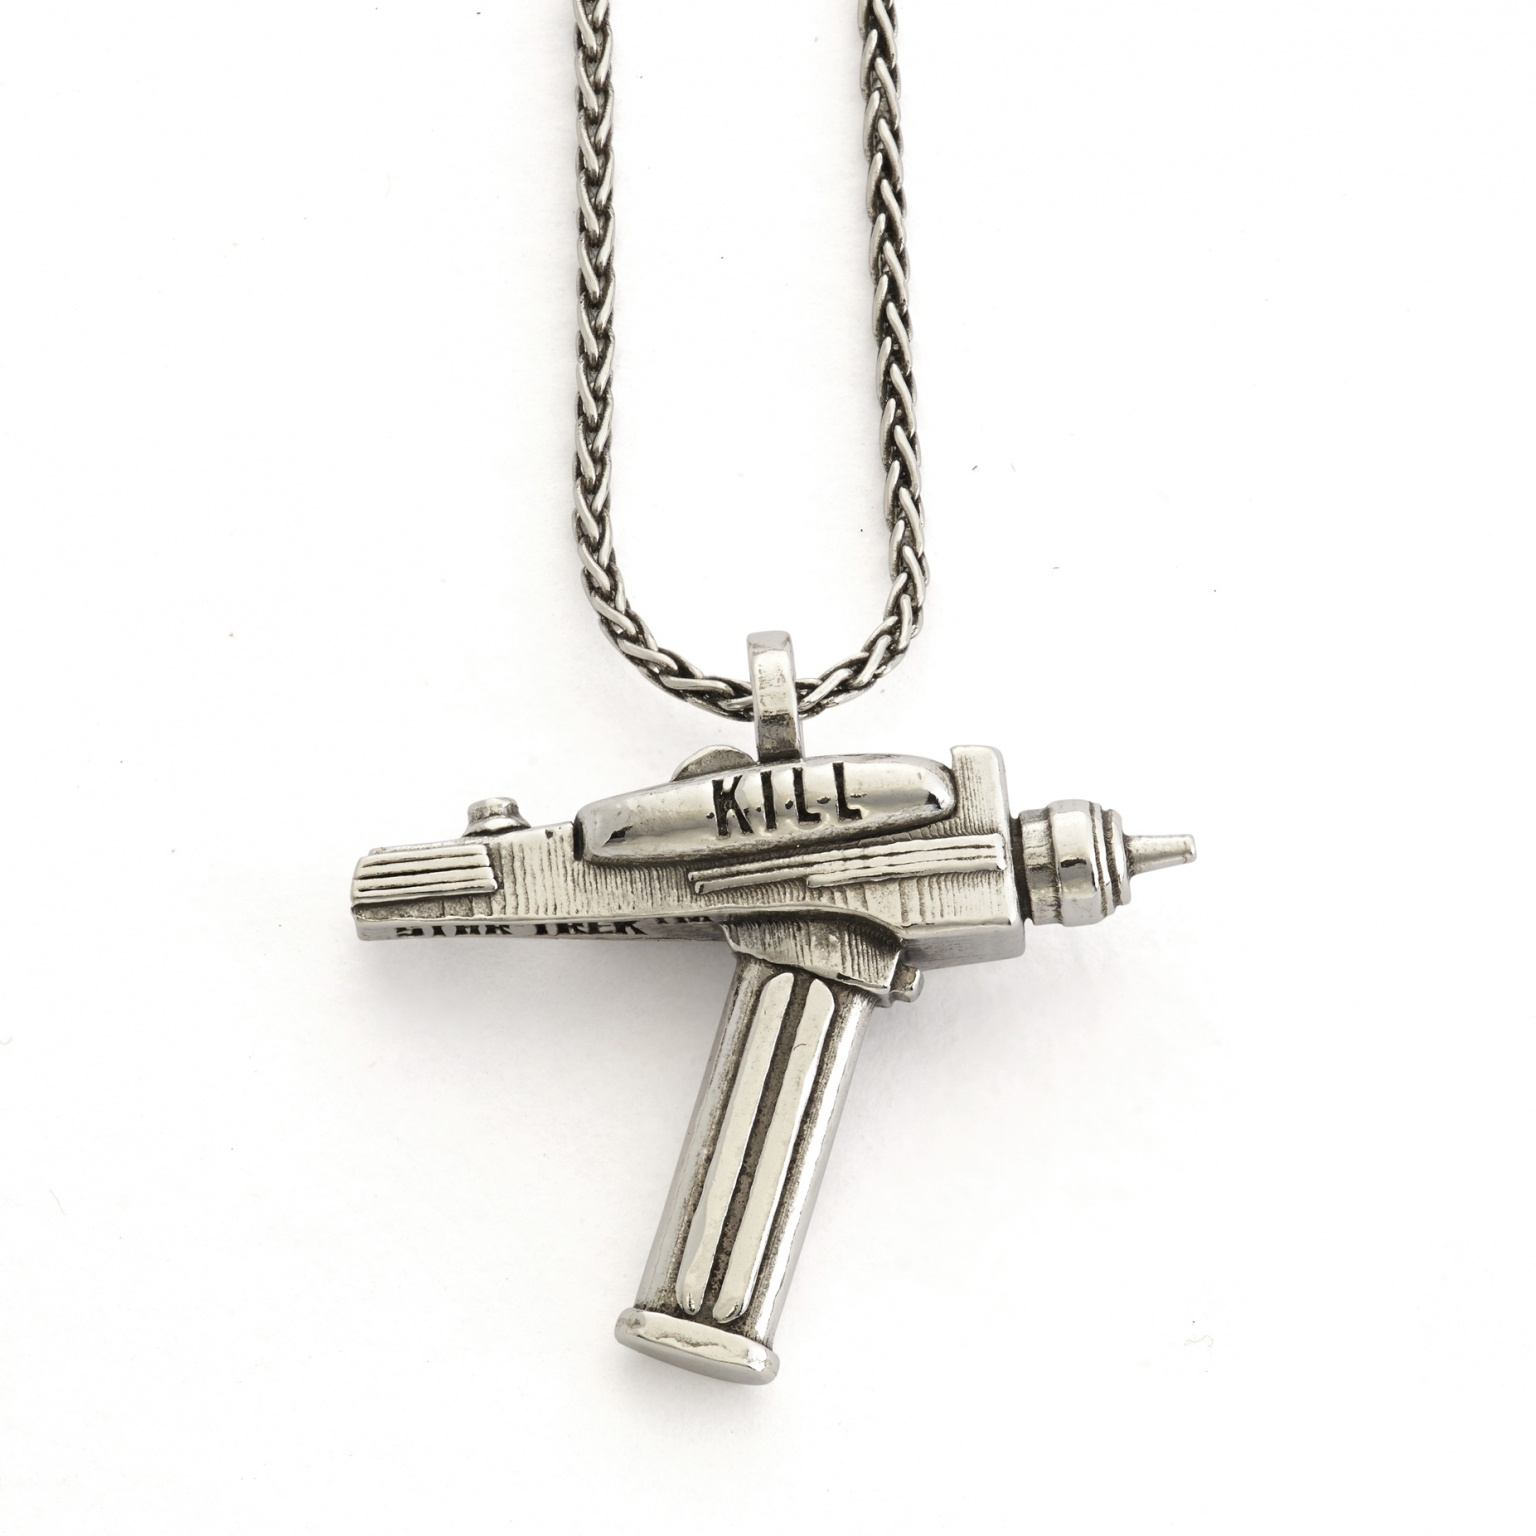 RockLove's Phaser Necklace